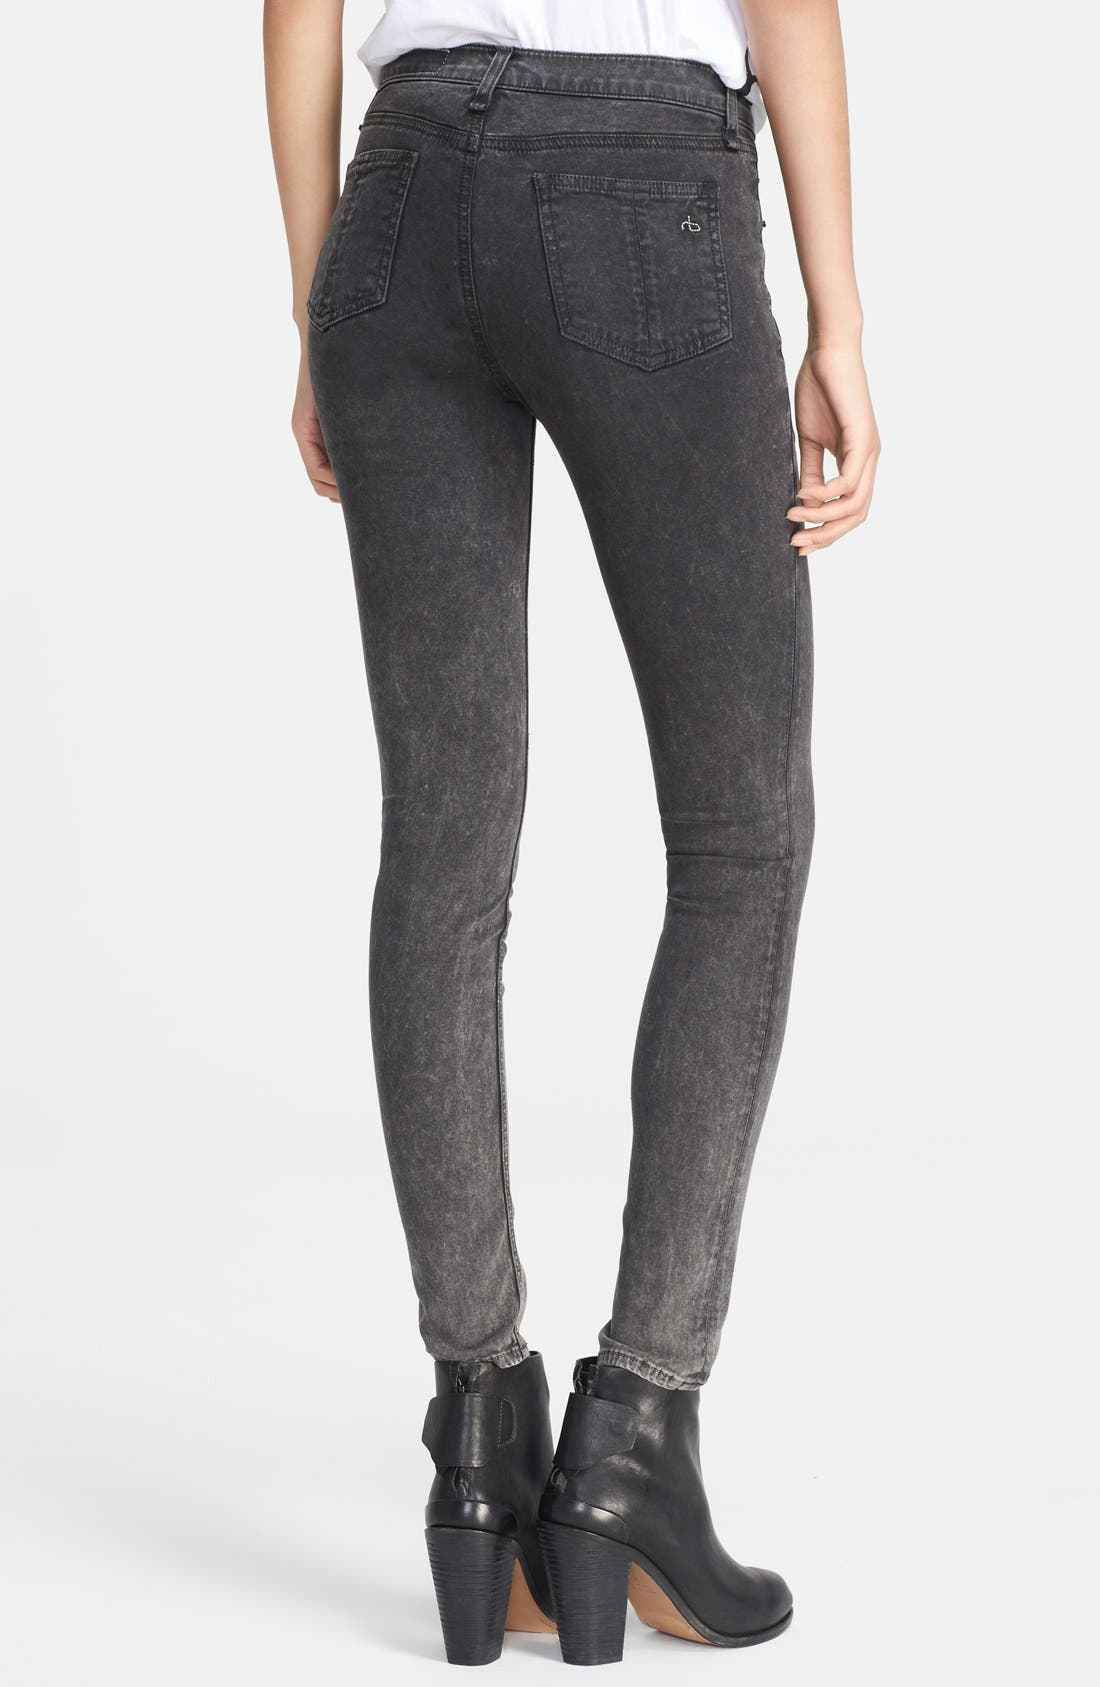 Alternate Image 2  - rag & bone/JEAN 'Justine' High Rise Skinny Jeans (Rosebowl Black)